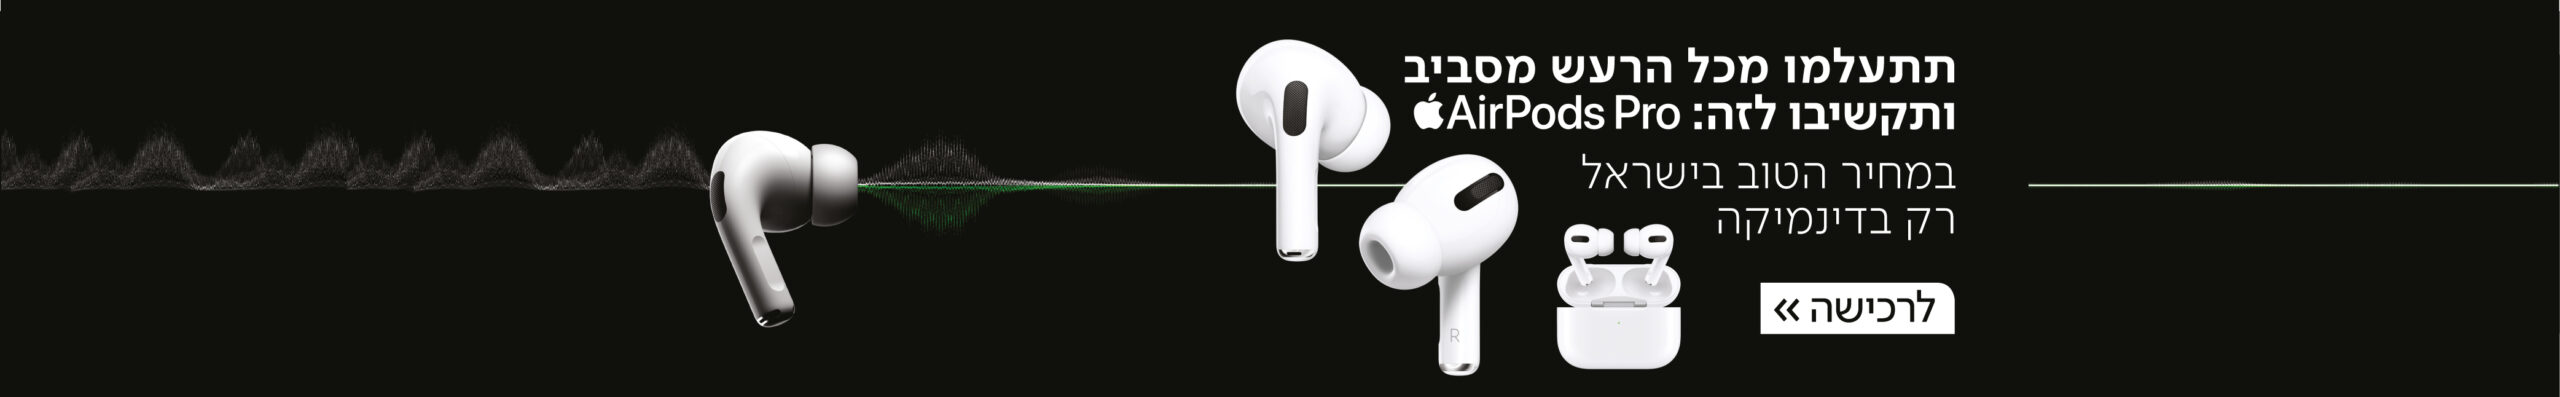 16514_AirPODs_PRO-scaled.jpg